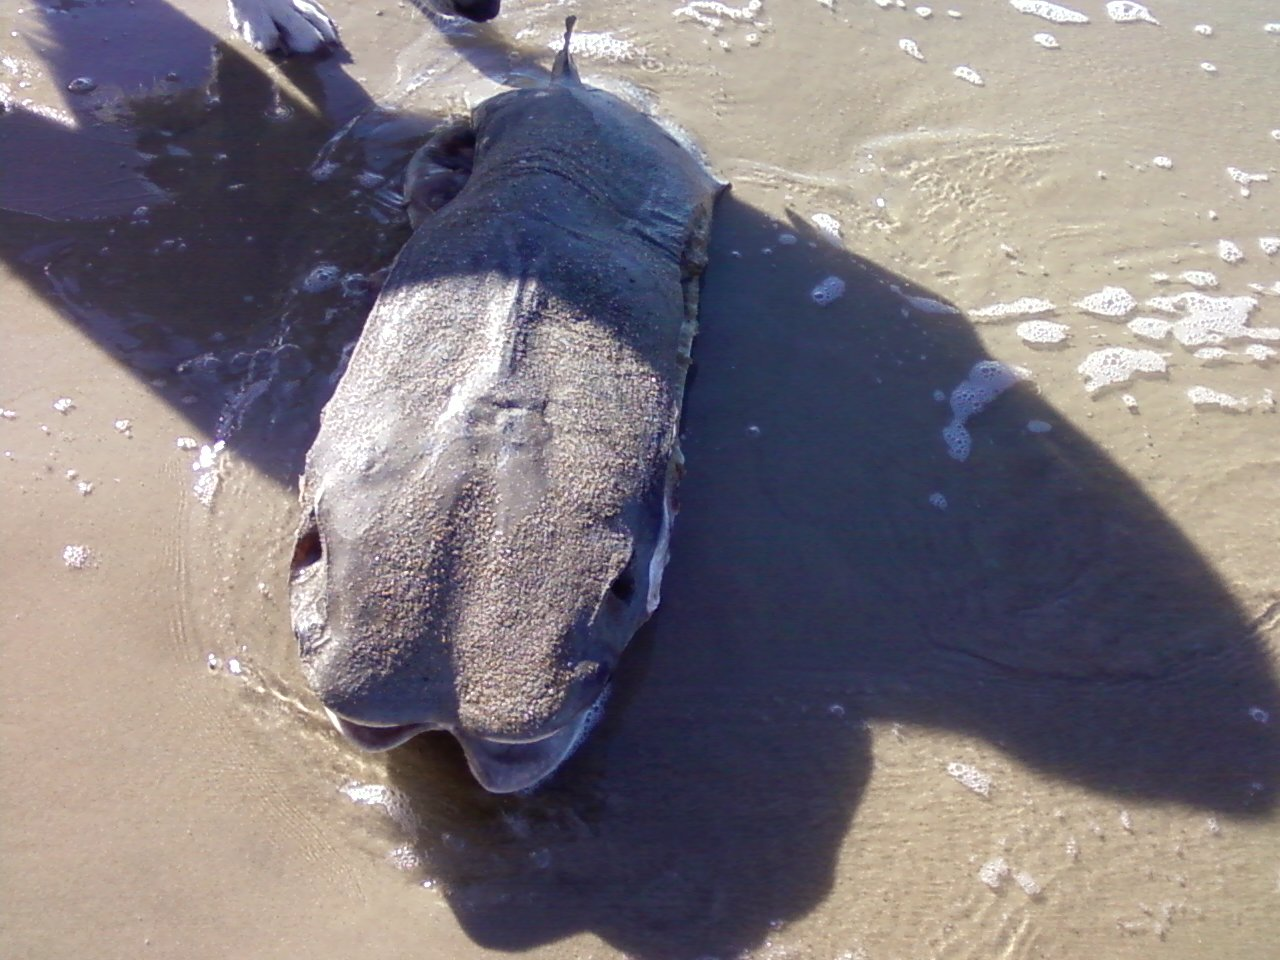 Prehistoric fish washed up on shore - photo#1